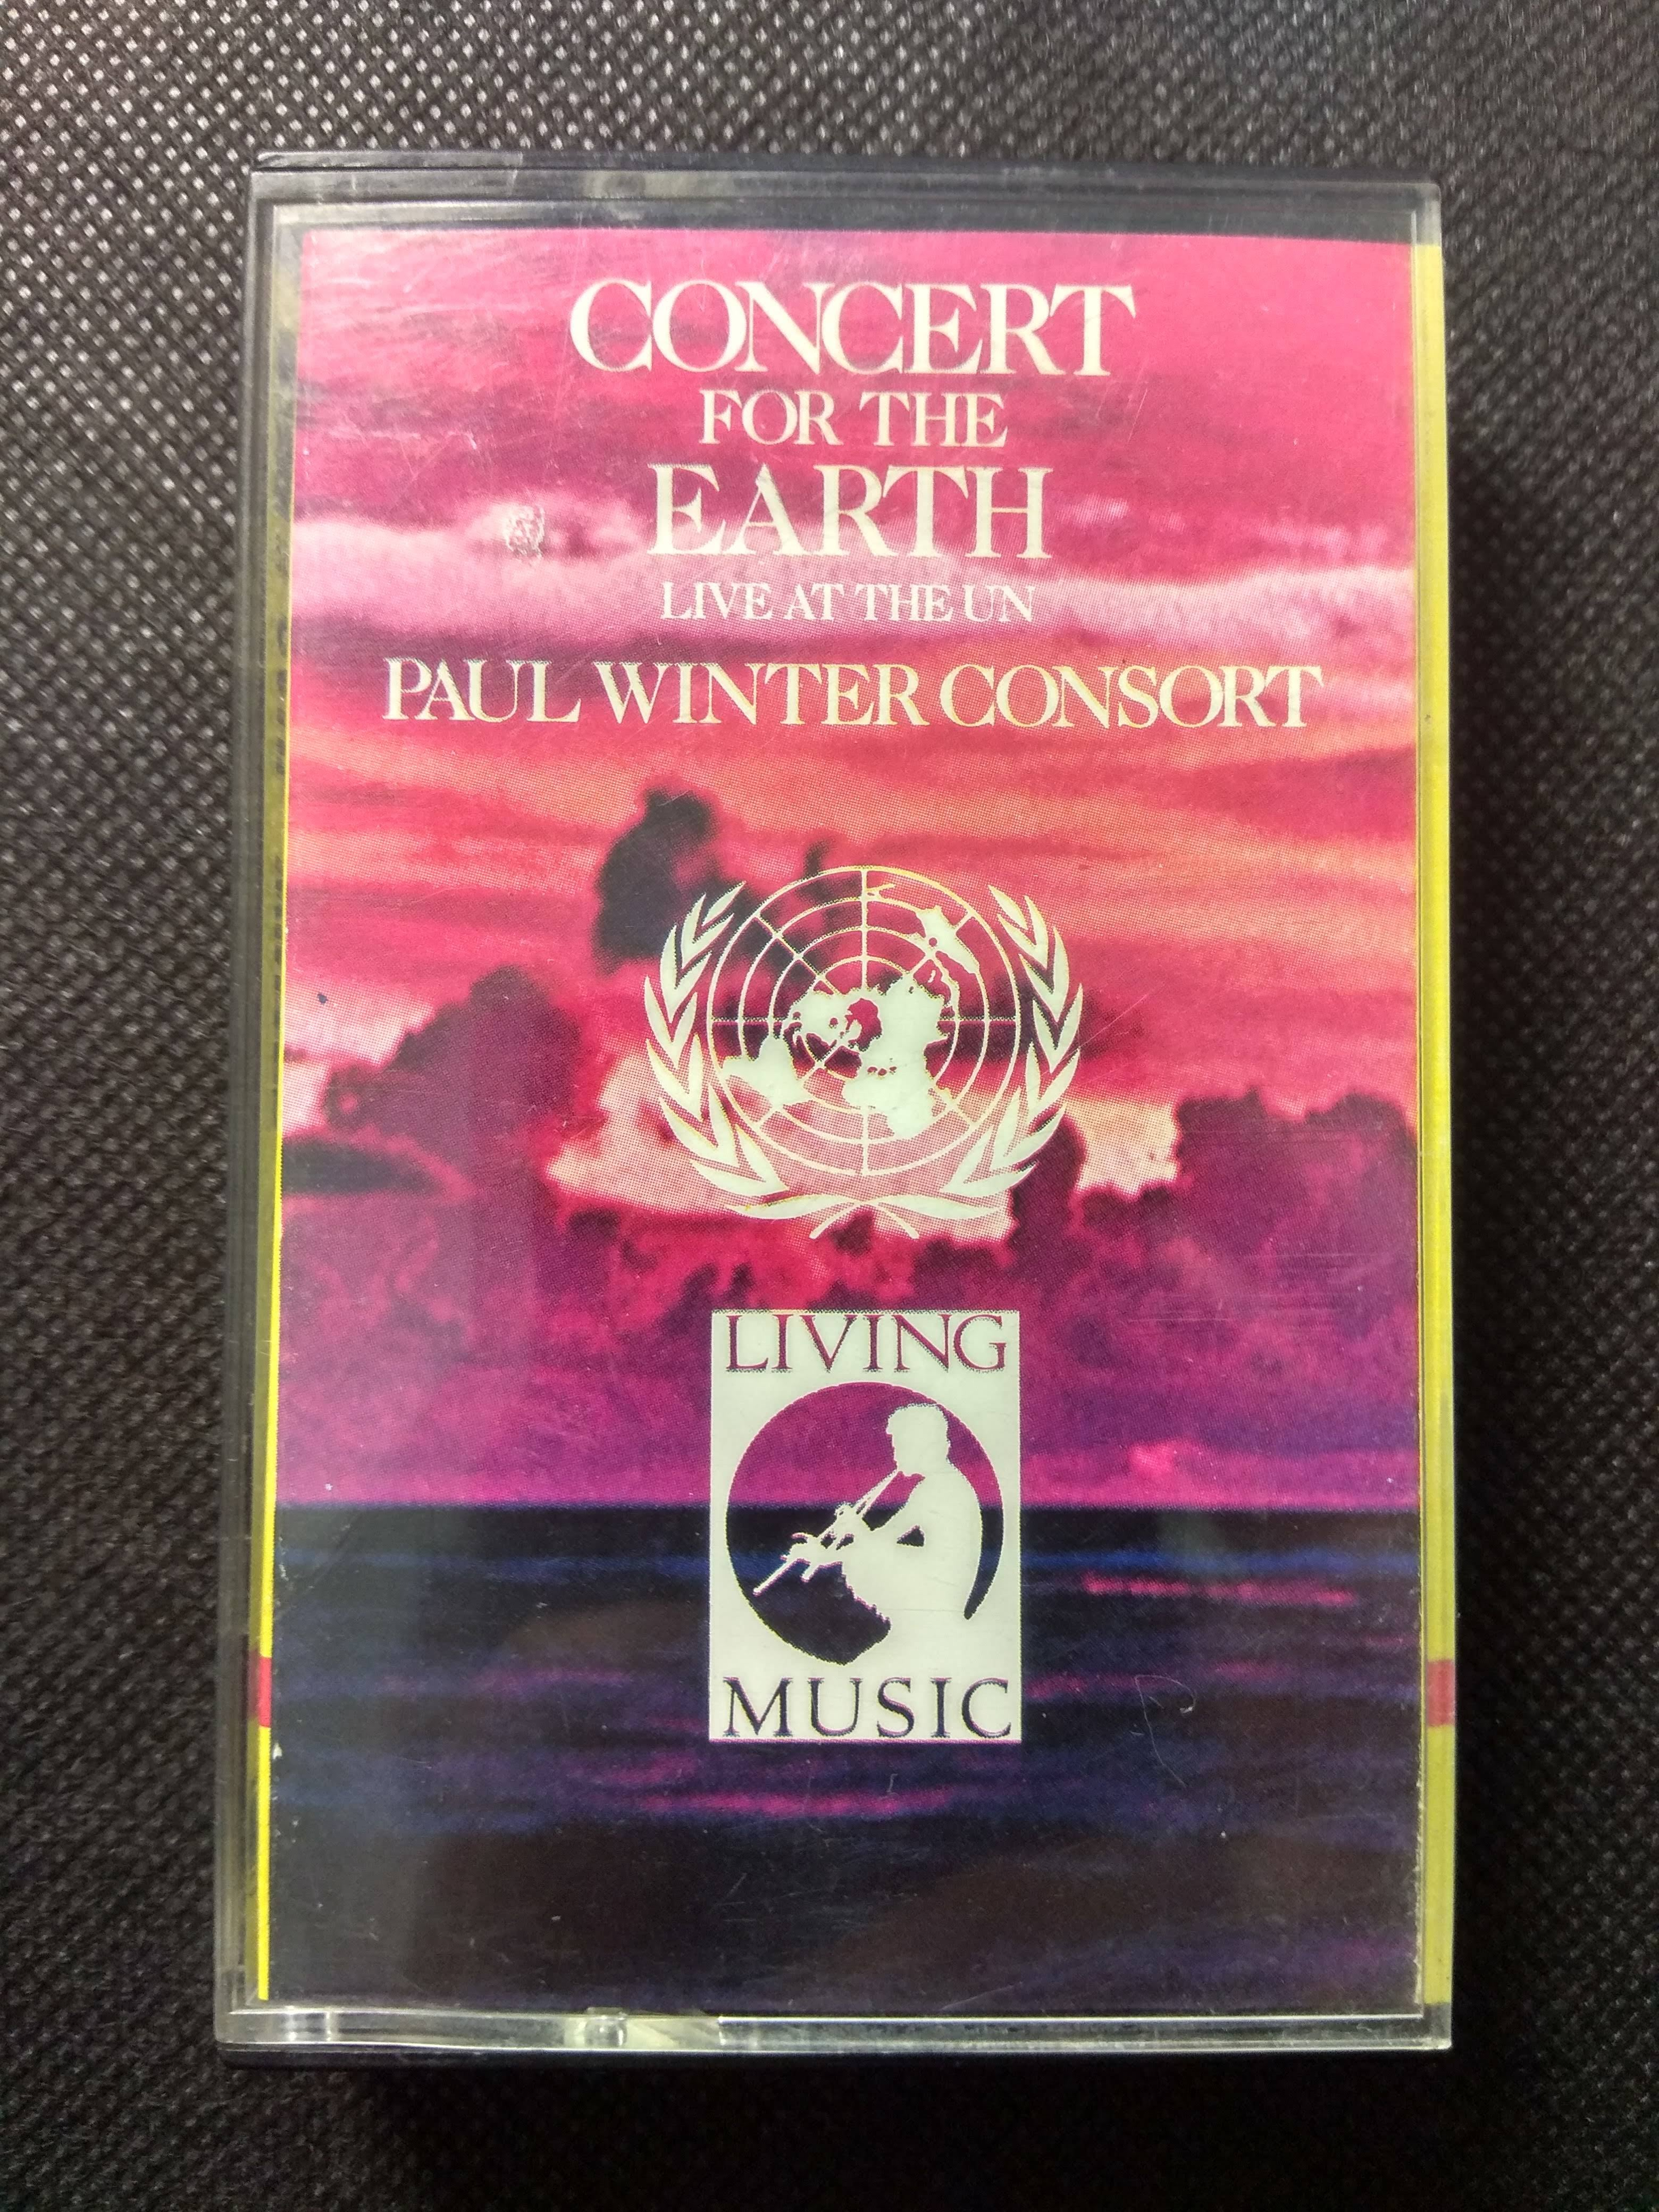 Paul Winter Consort/ Concert For The Earth/ 齊飛 代理發行